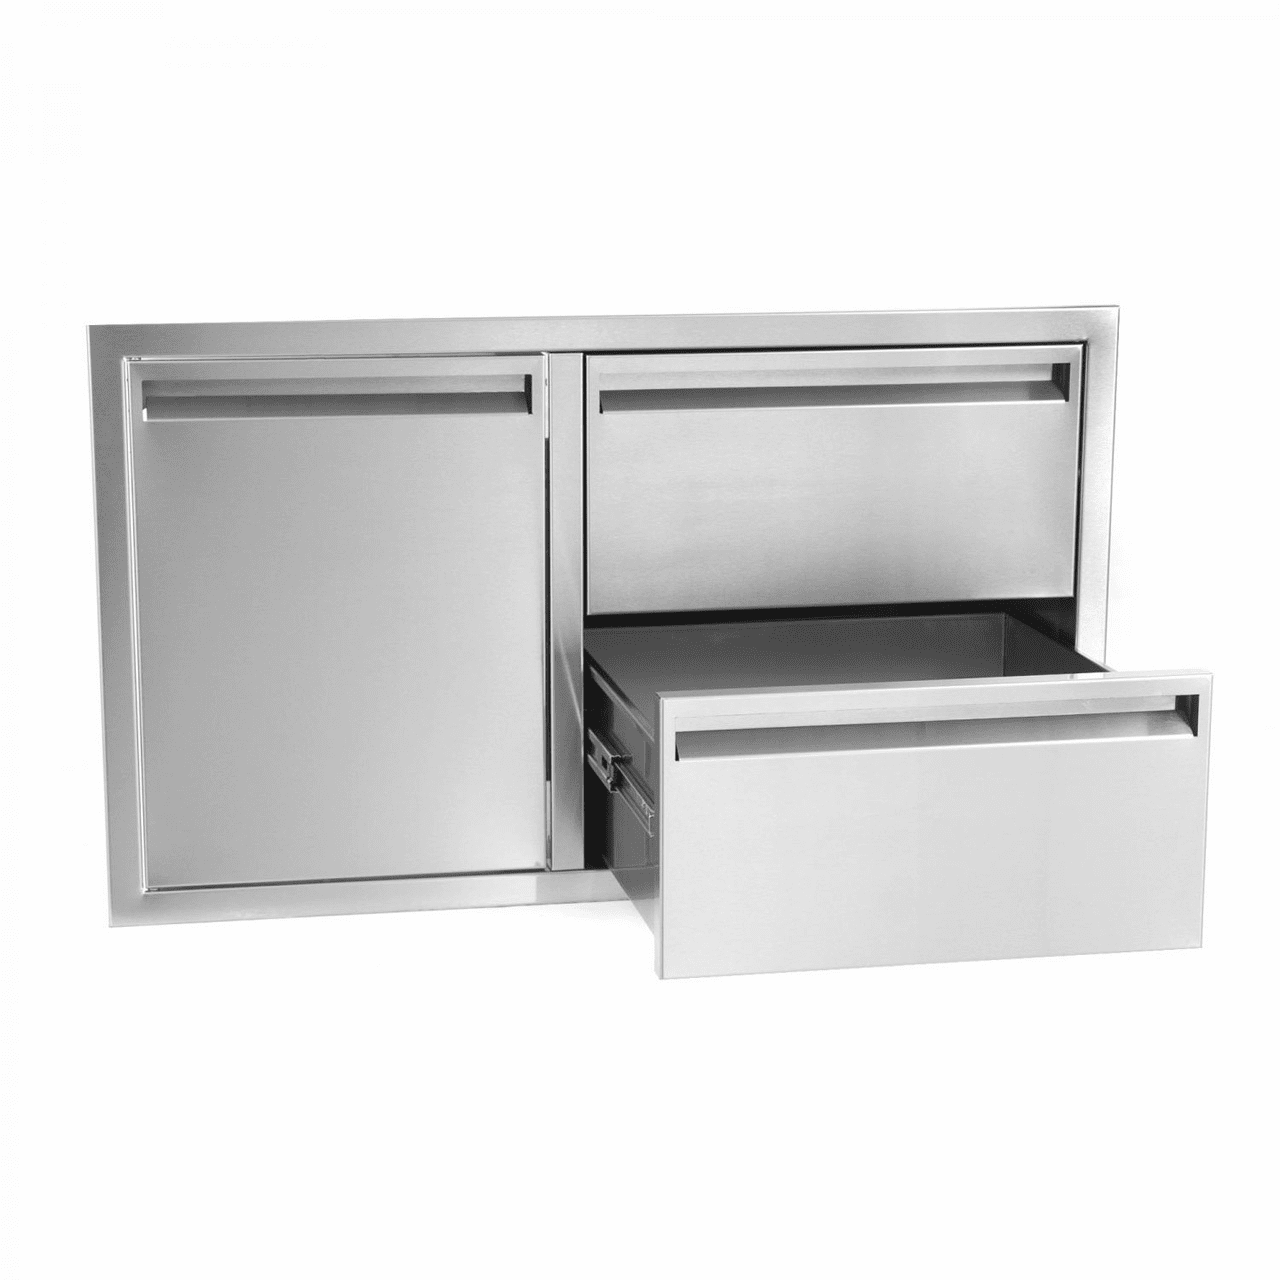 PCM 301 Series 2 Drawer 1 Door Combo 36 inch